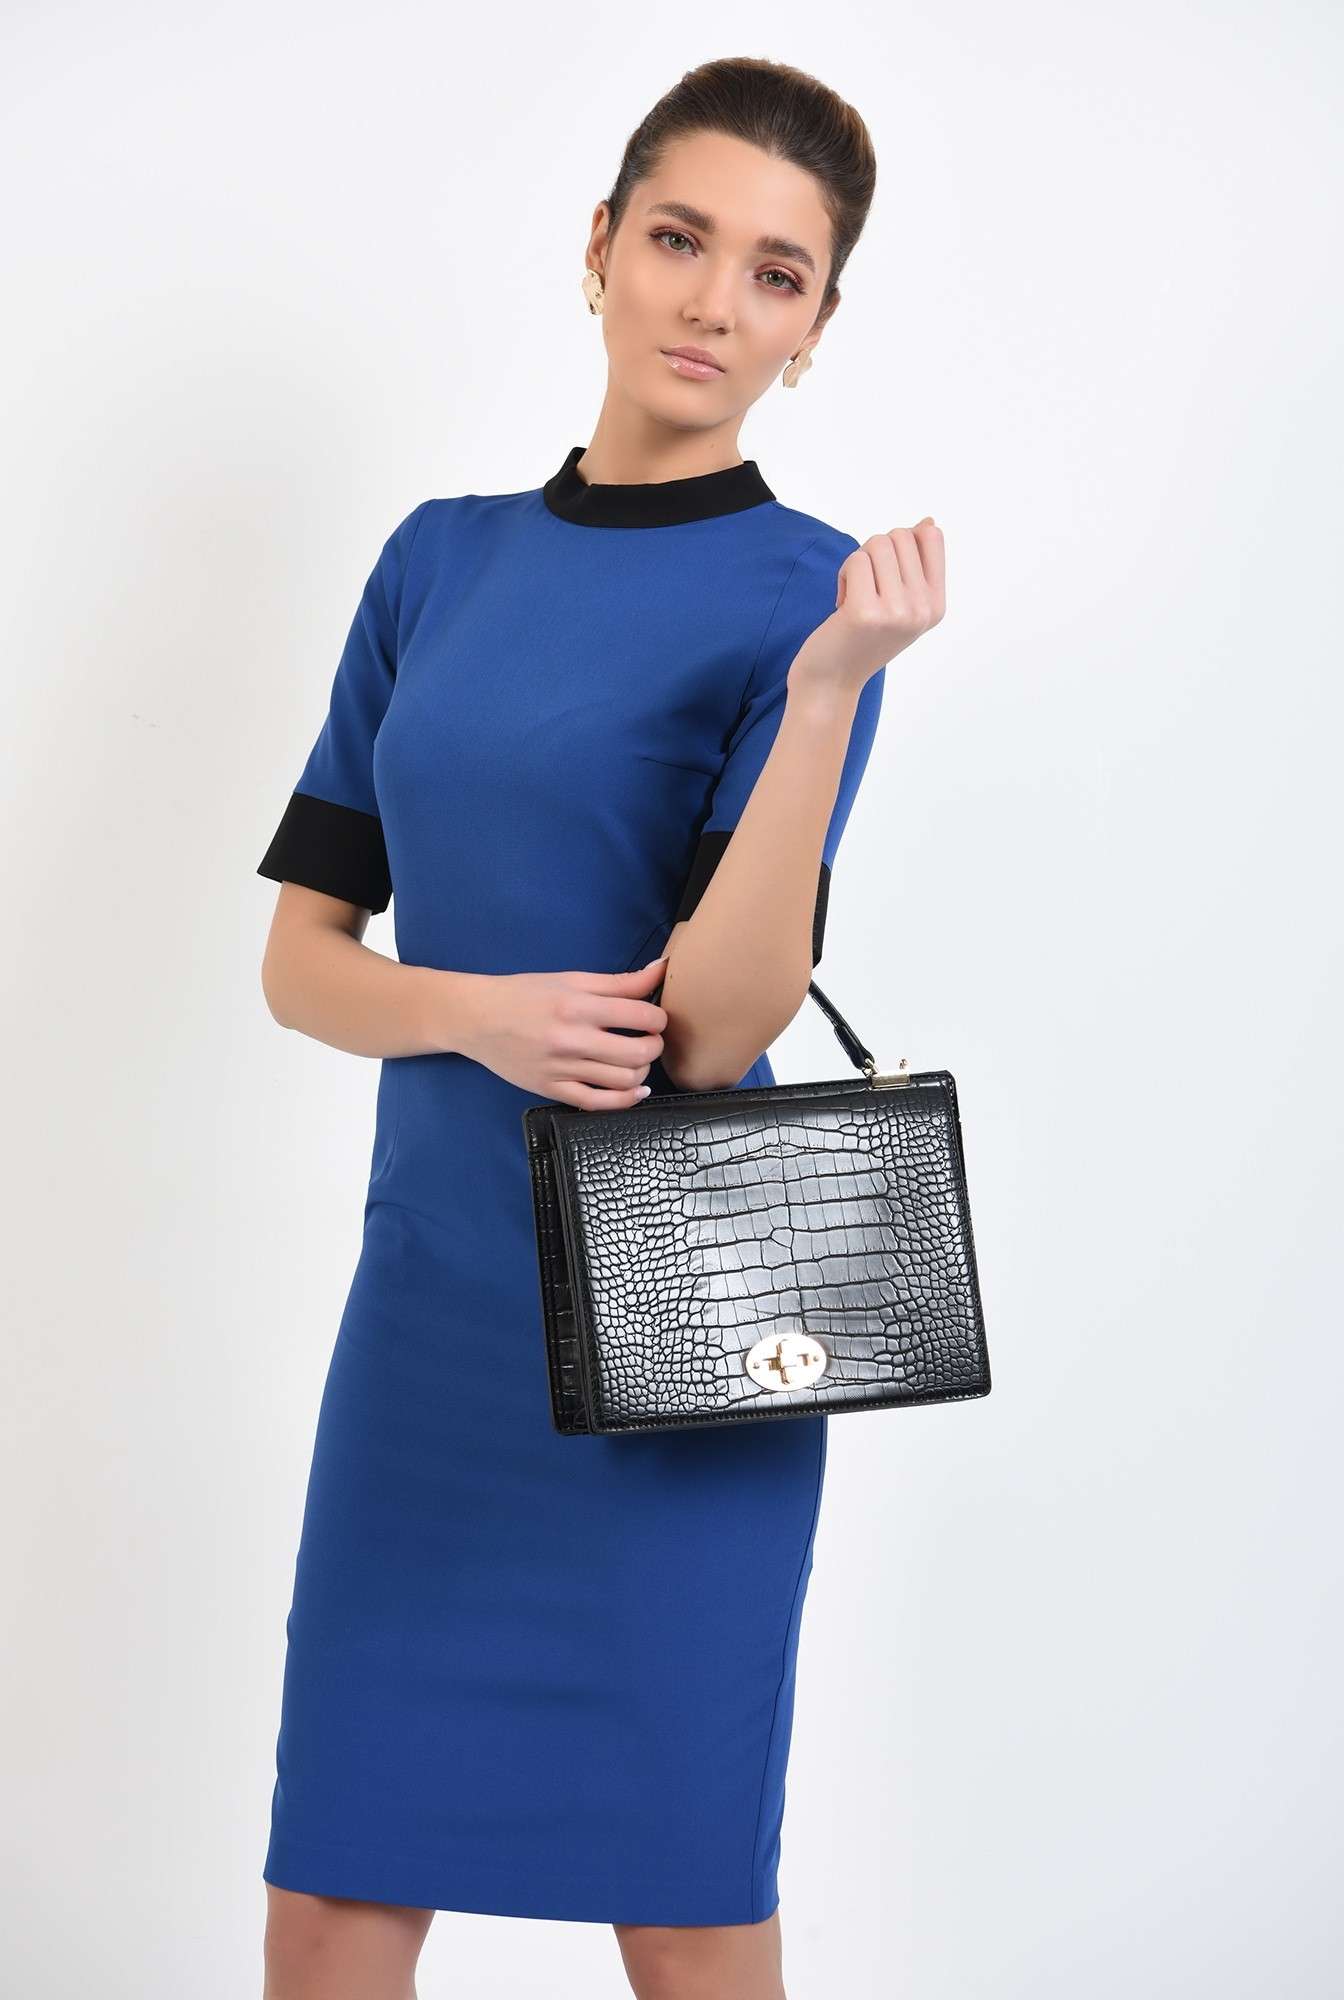 0 - rochie office, midi, conica, maneci scurte, borduri in contrast